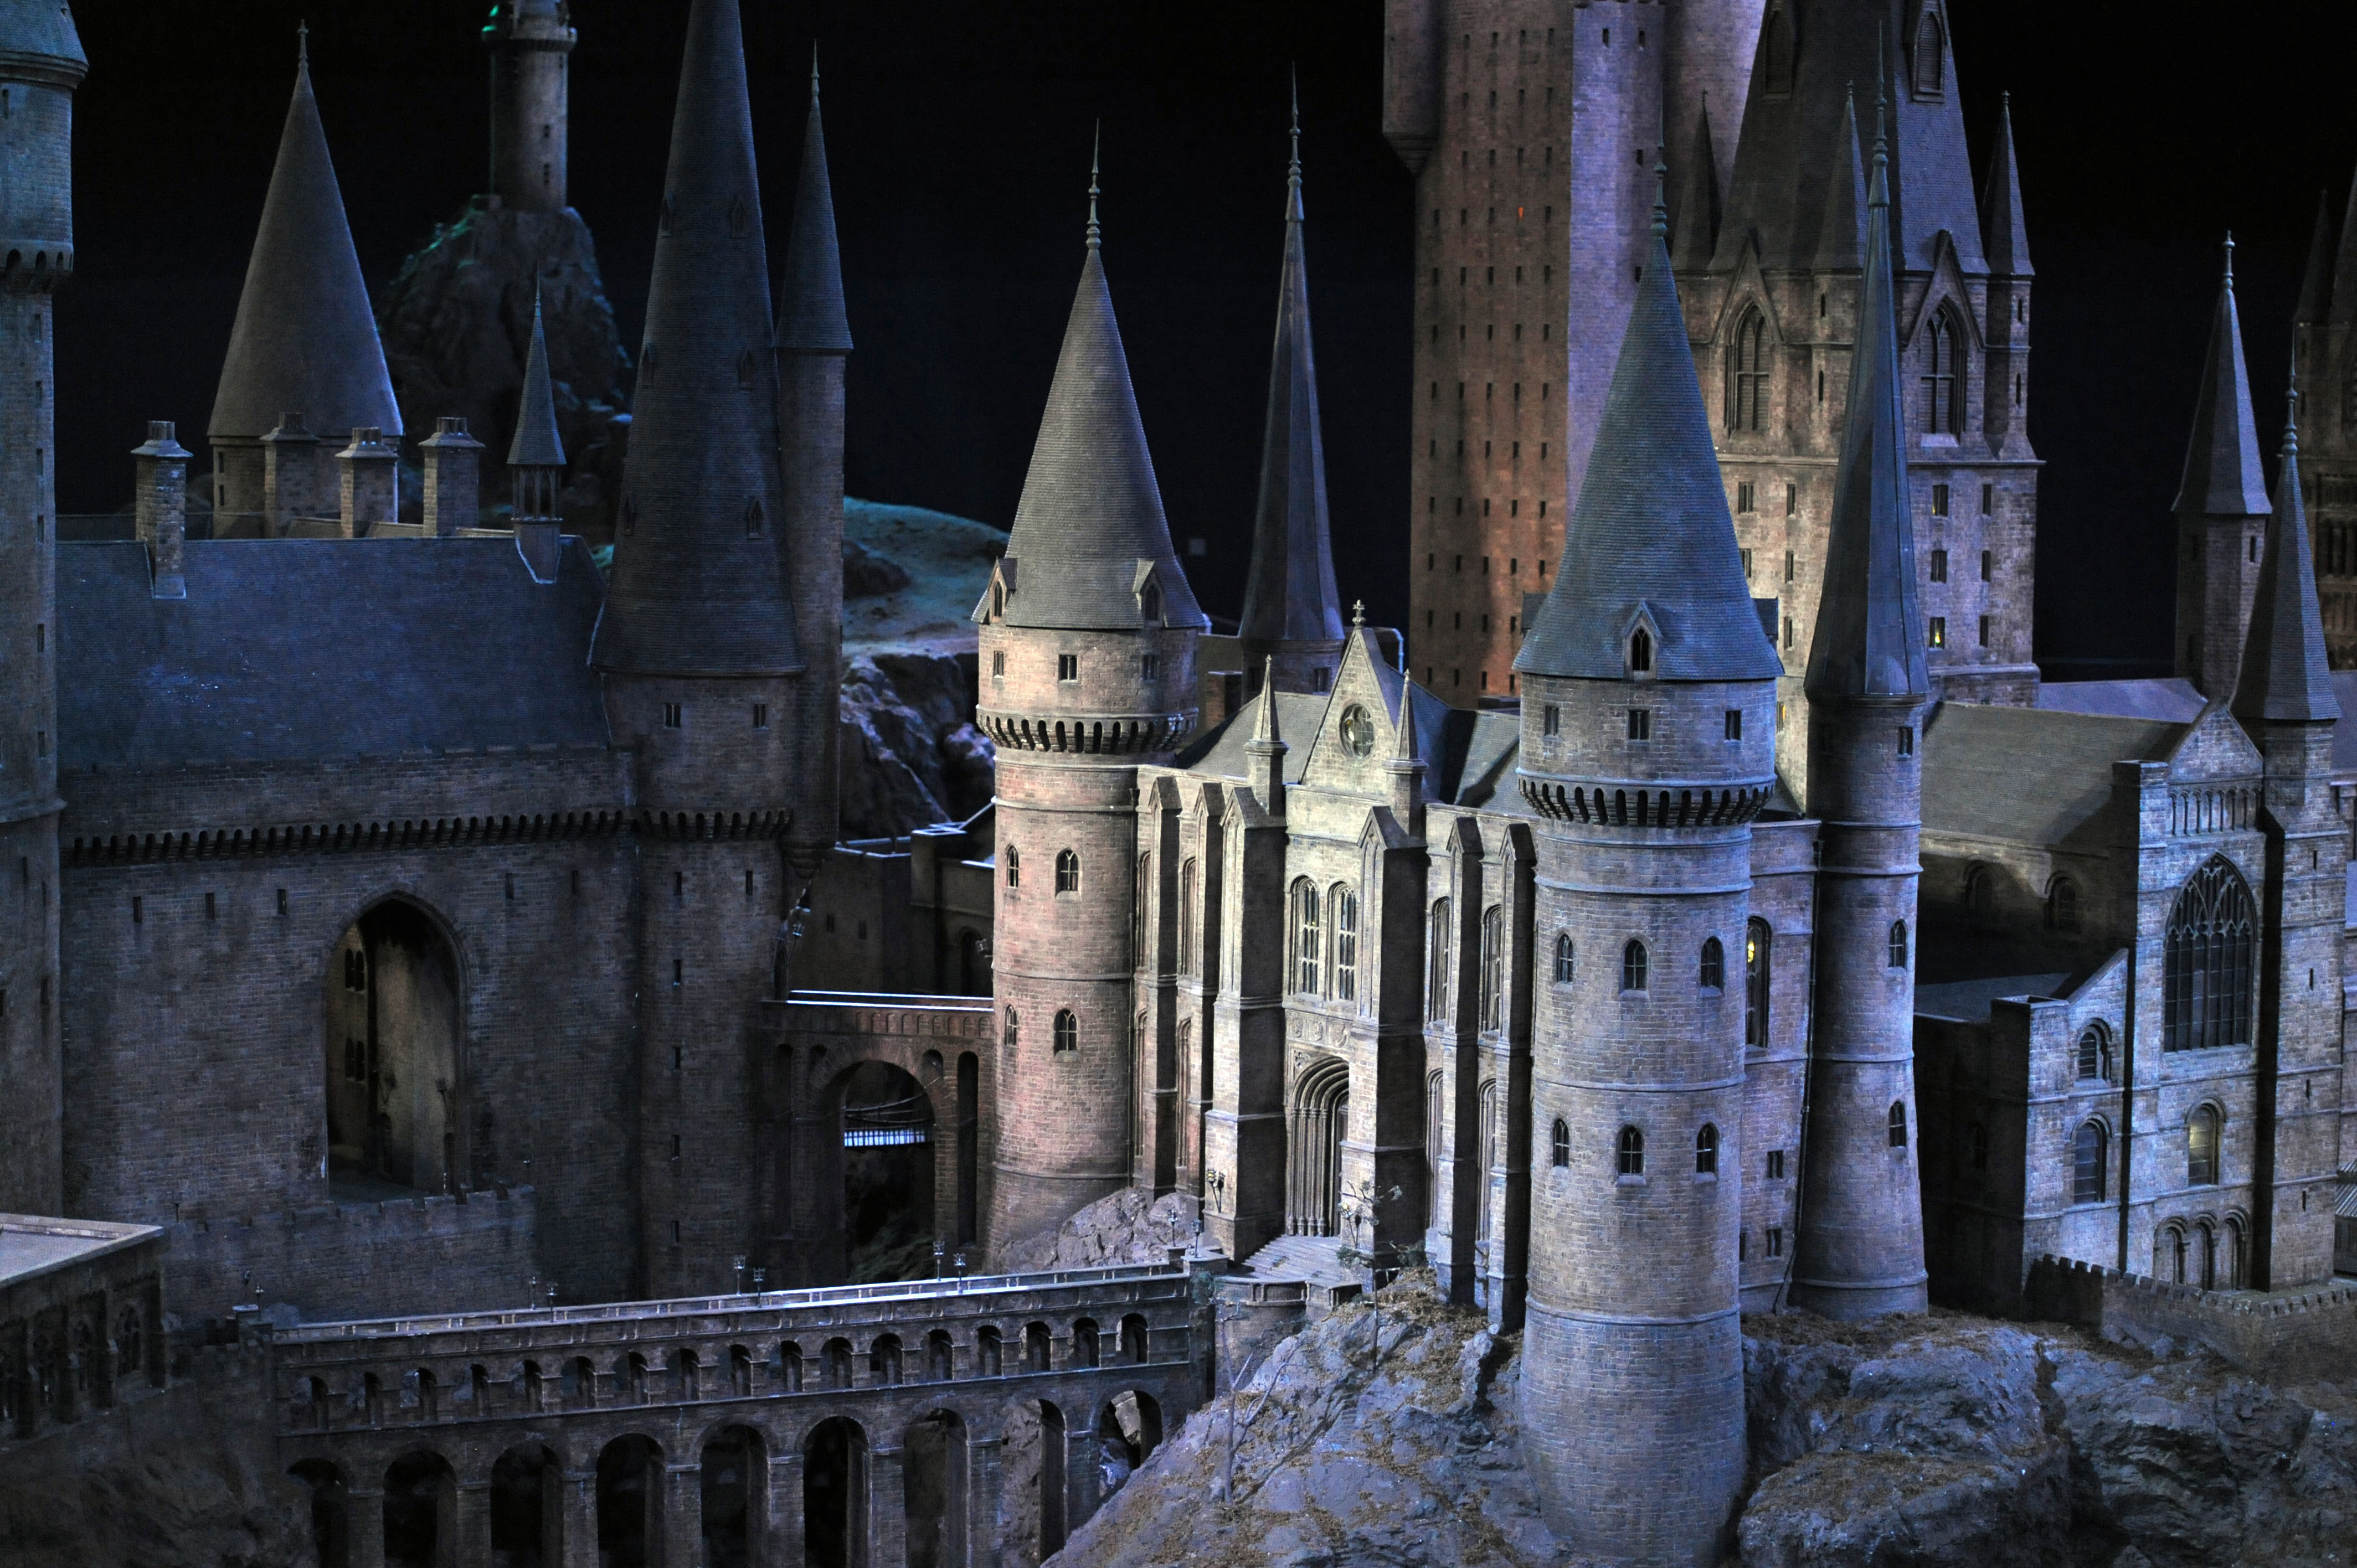 WBSTL Hogwarts model castle